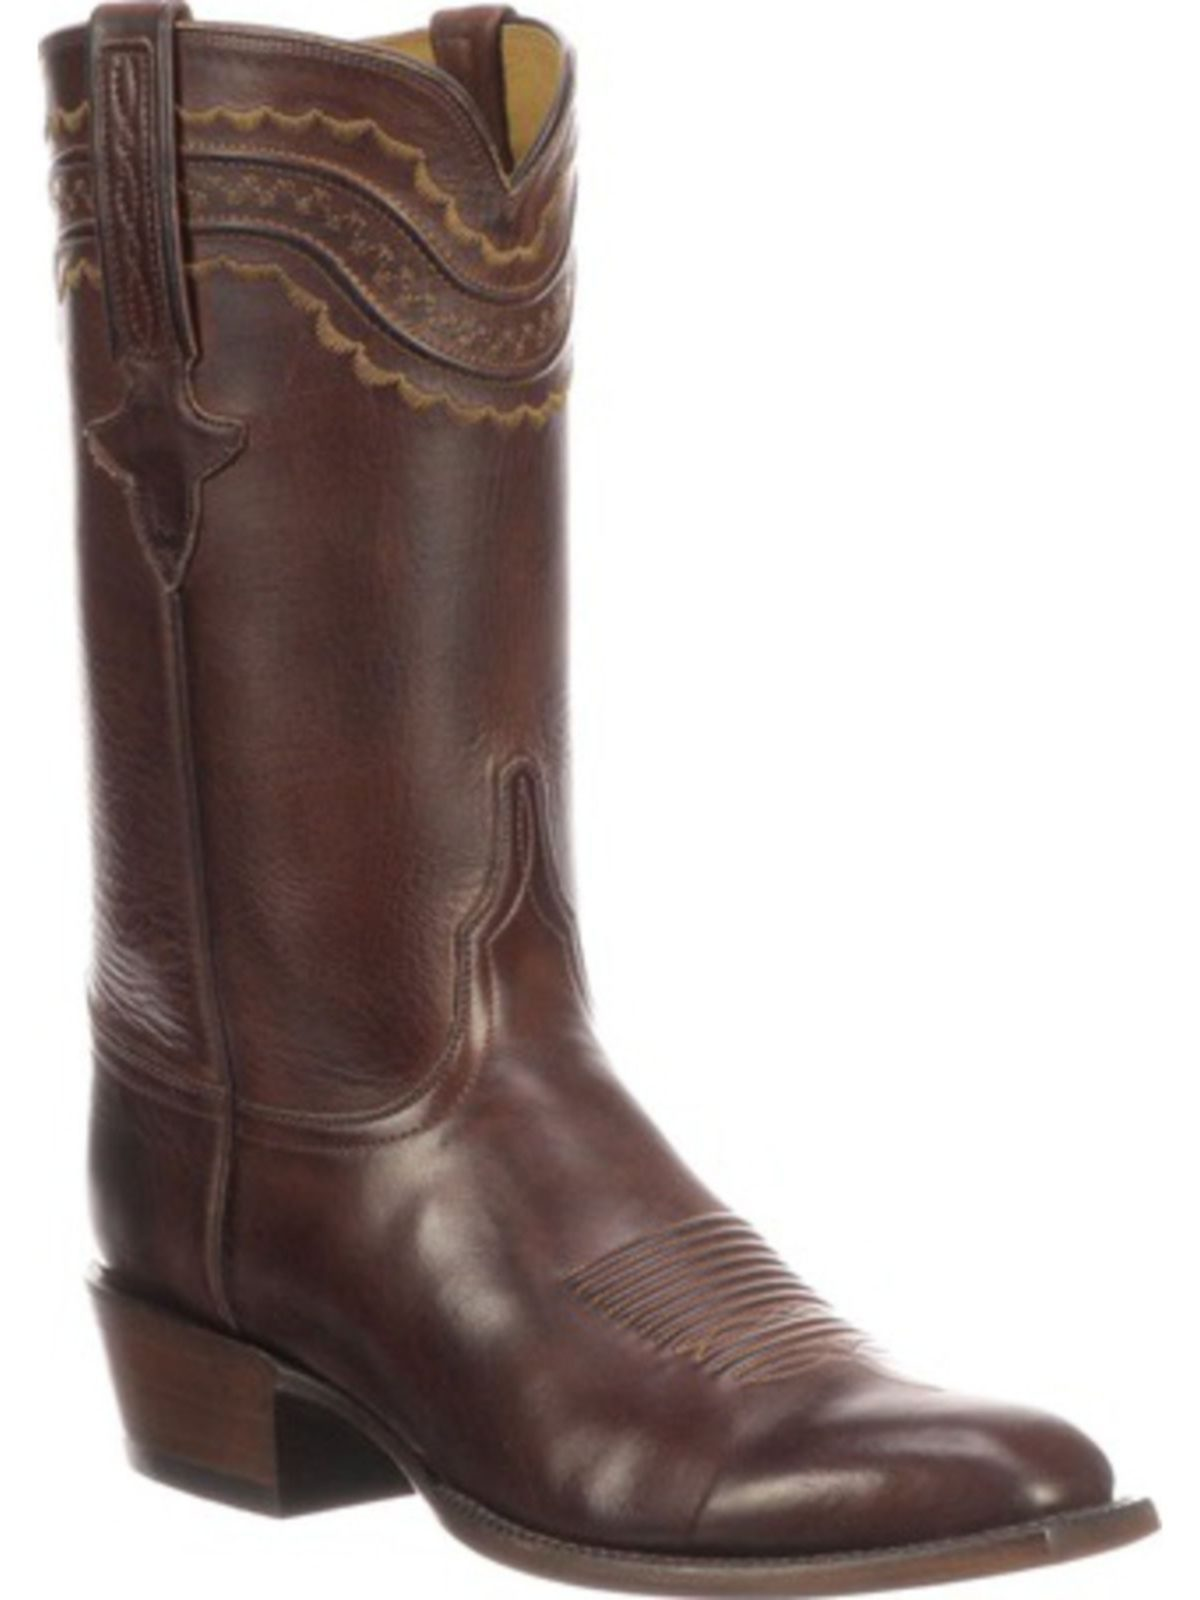 Bootamerica Lucchese Mens Devin Tan Ranch Hand Western